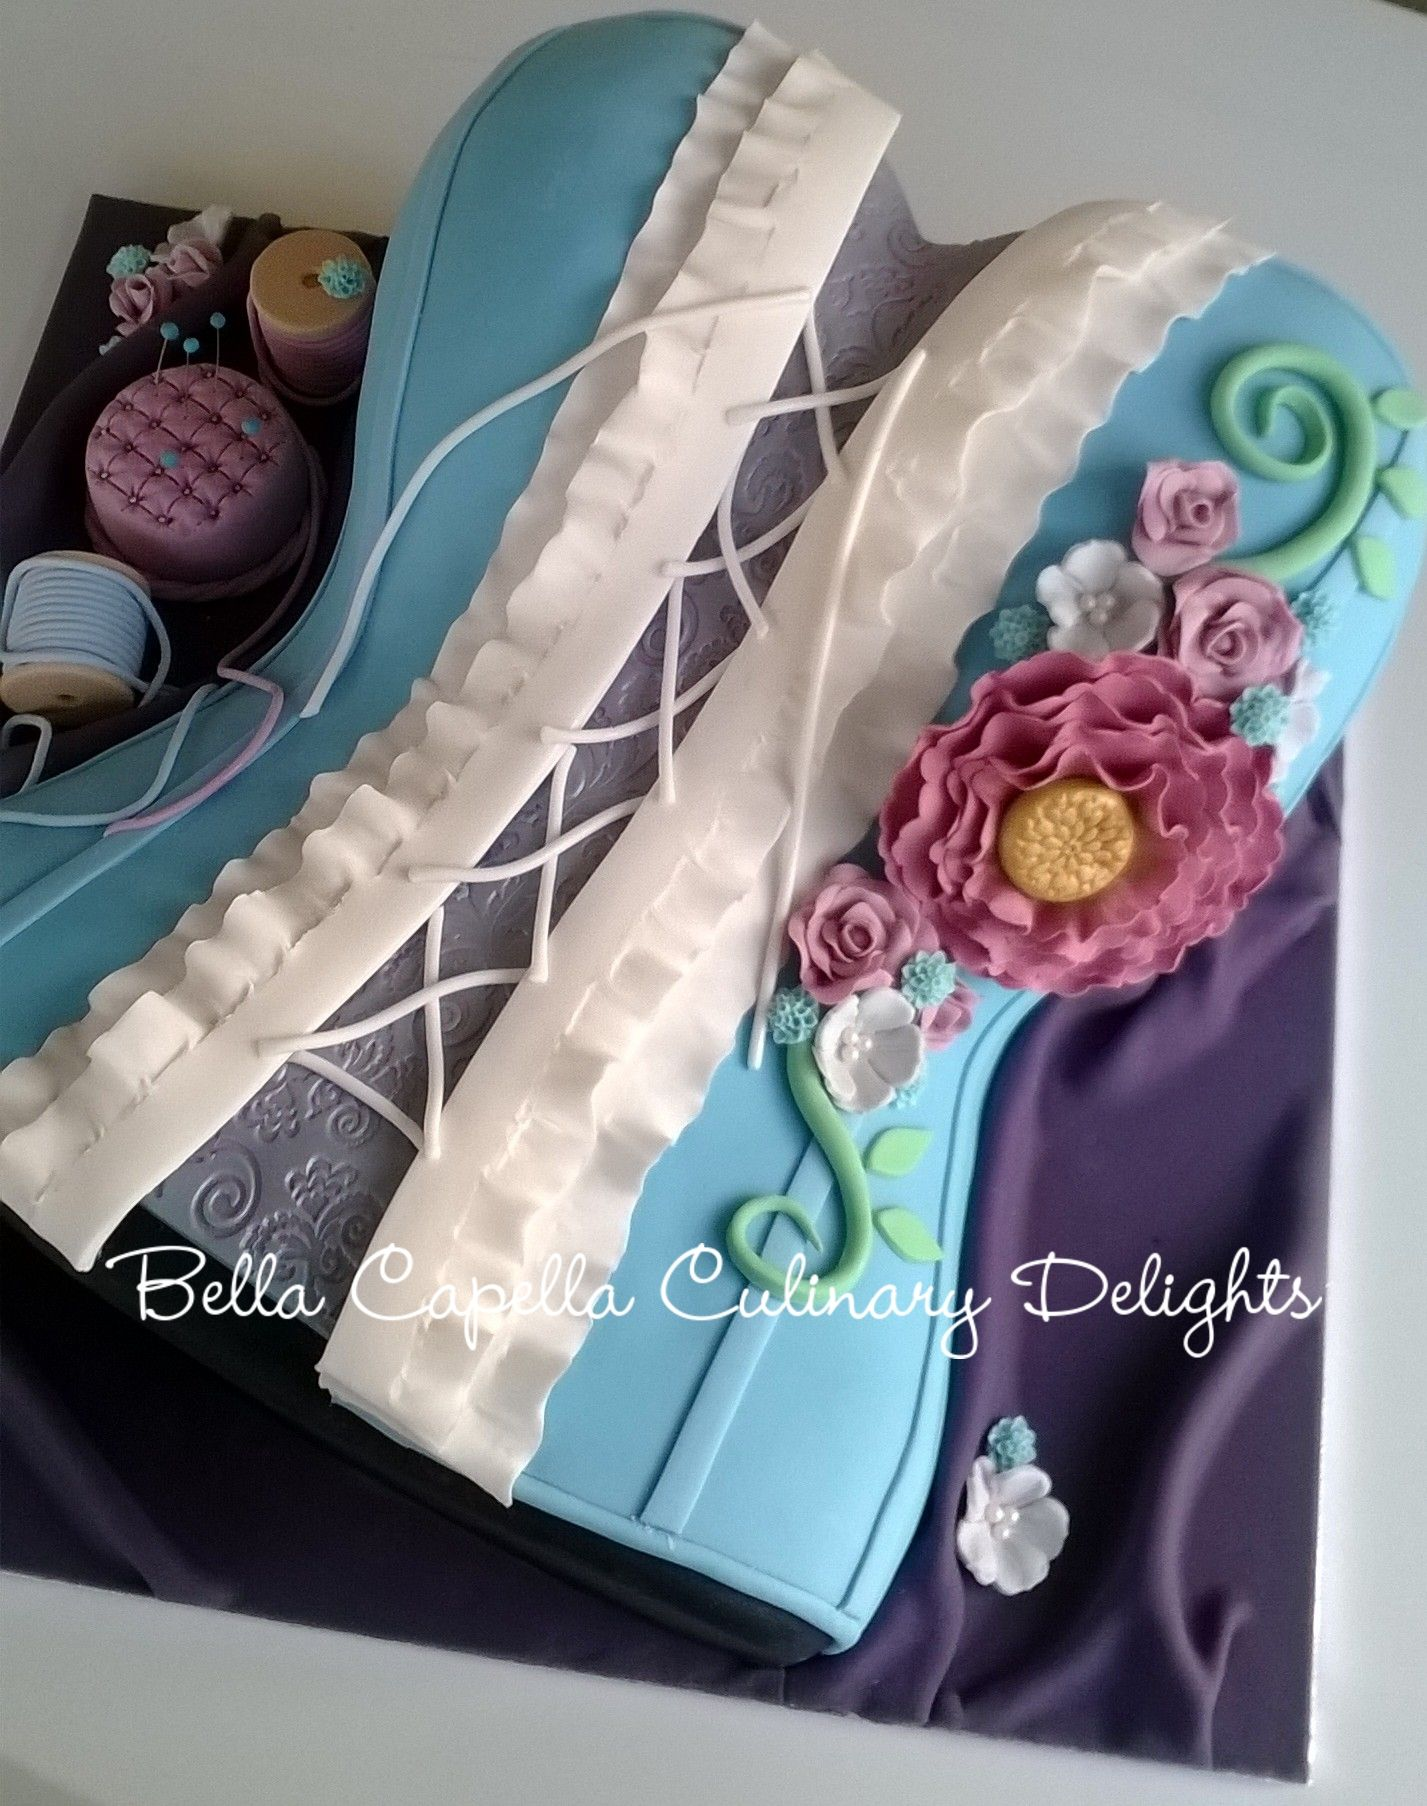 Floral Corset Cake . Cakes from Bella Capella Culinary